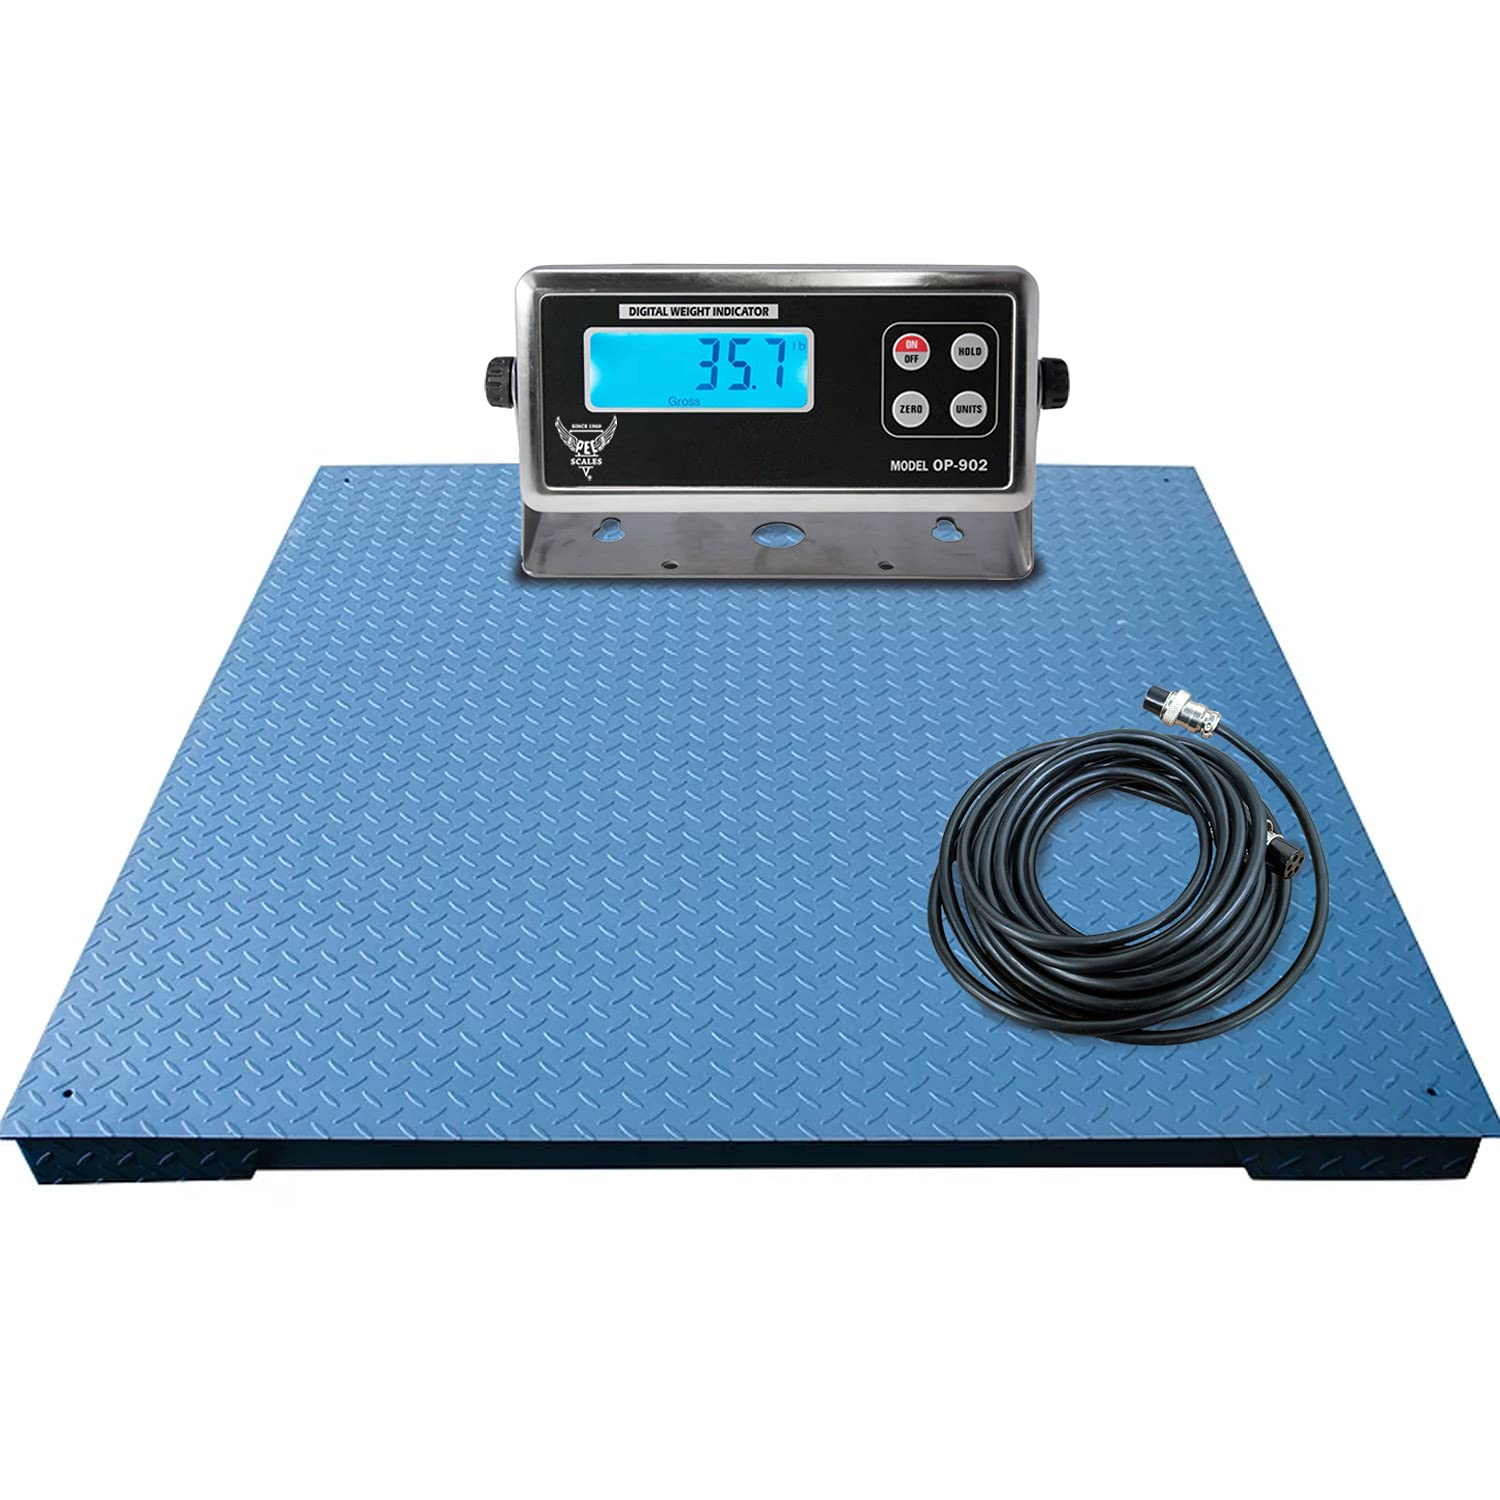 PEC Max 62% OFF Scales Warehouse Heavy Duty Scale wi Floor Industrial Pallet Ranking TOP14